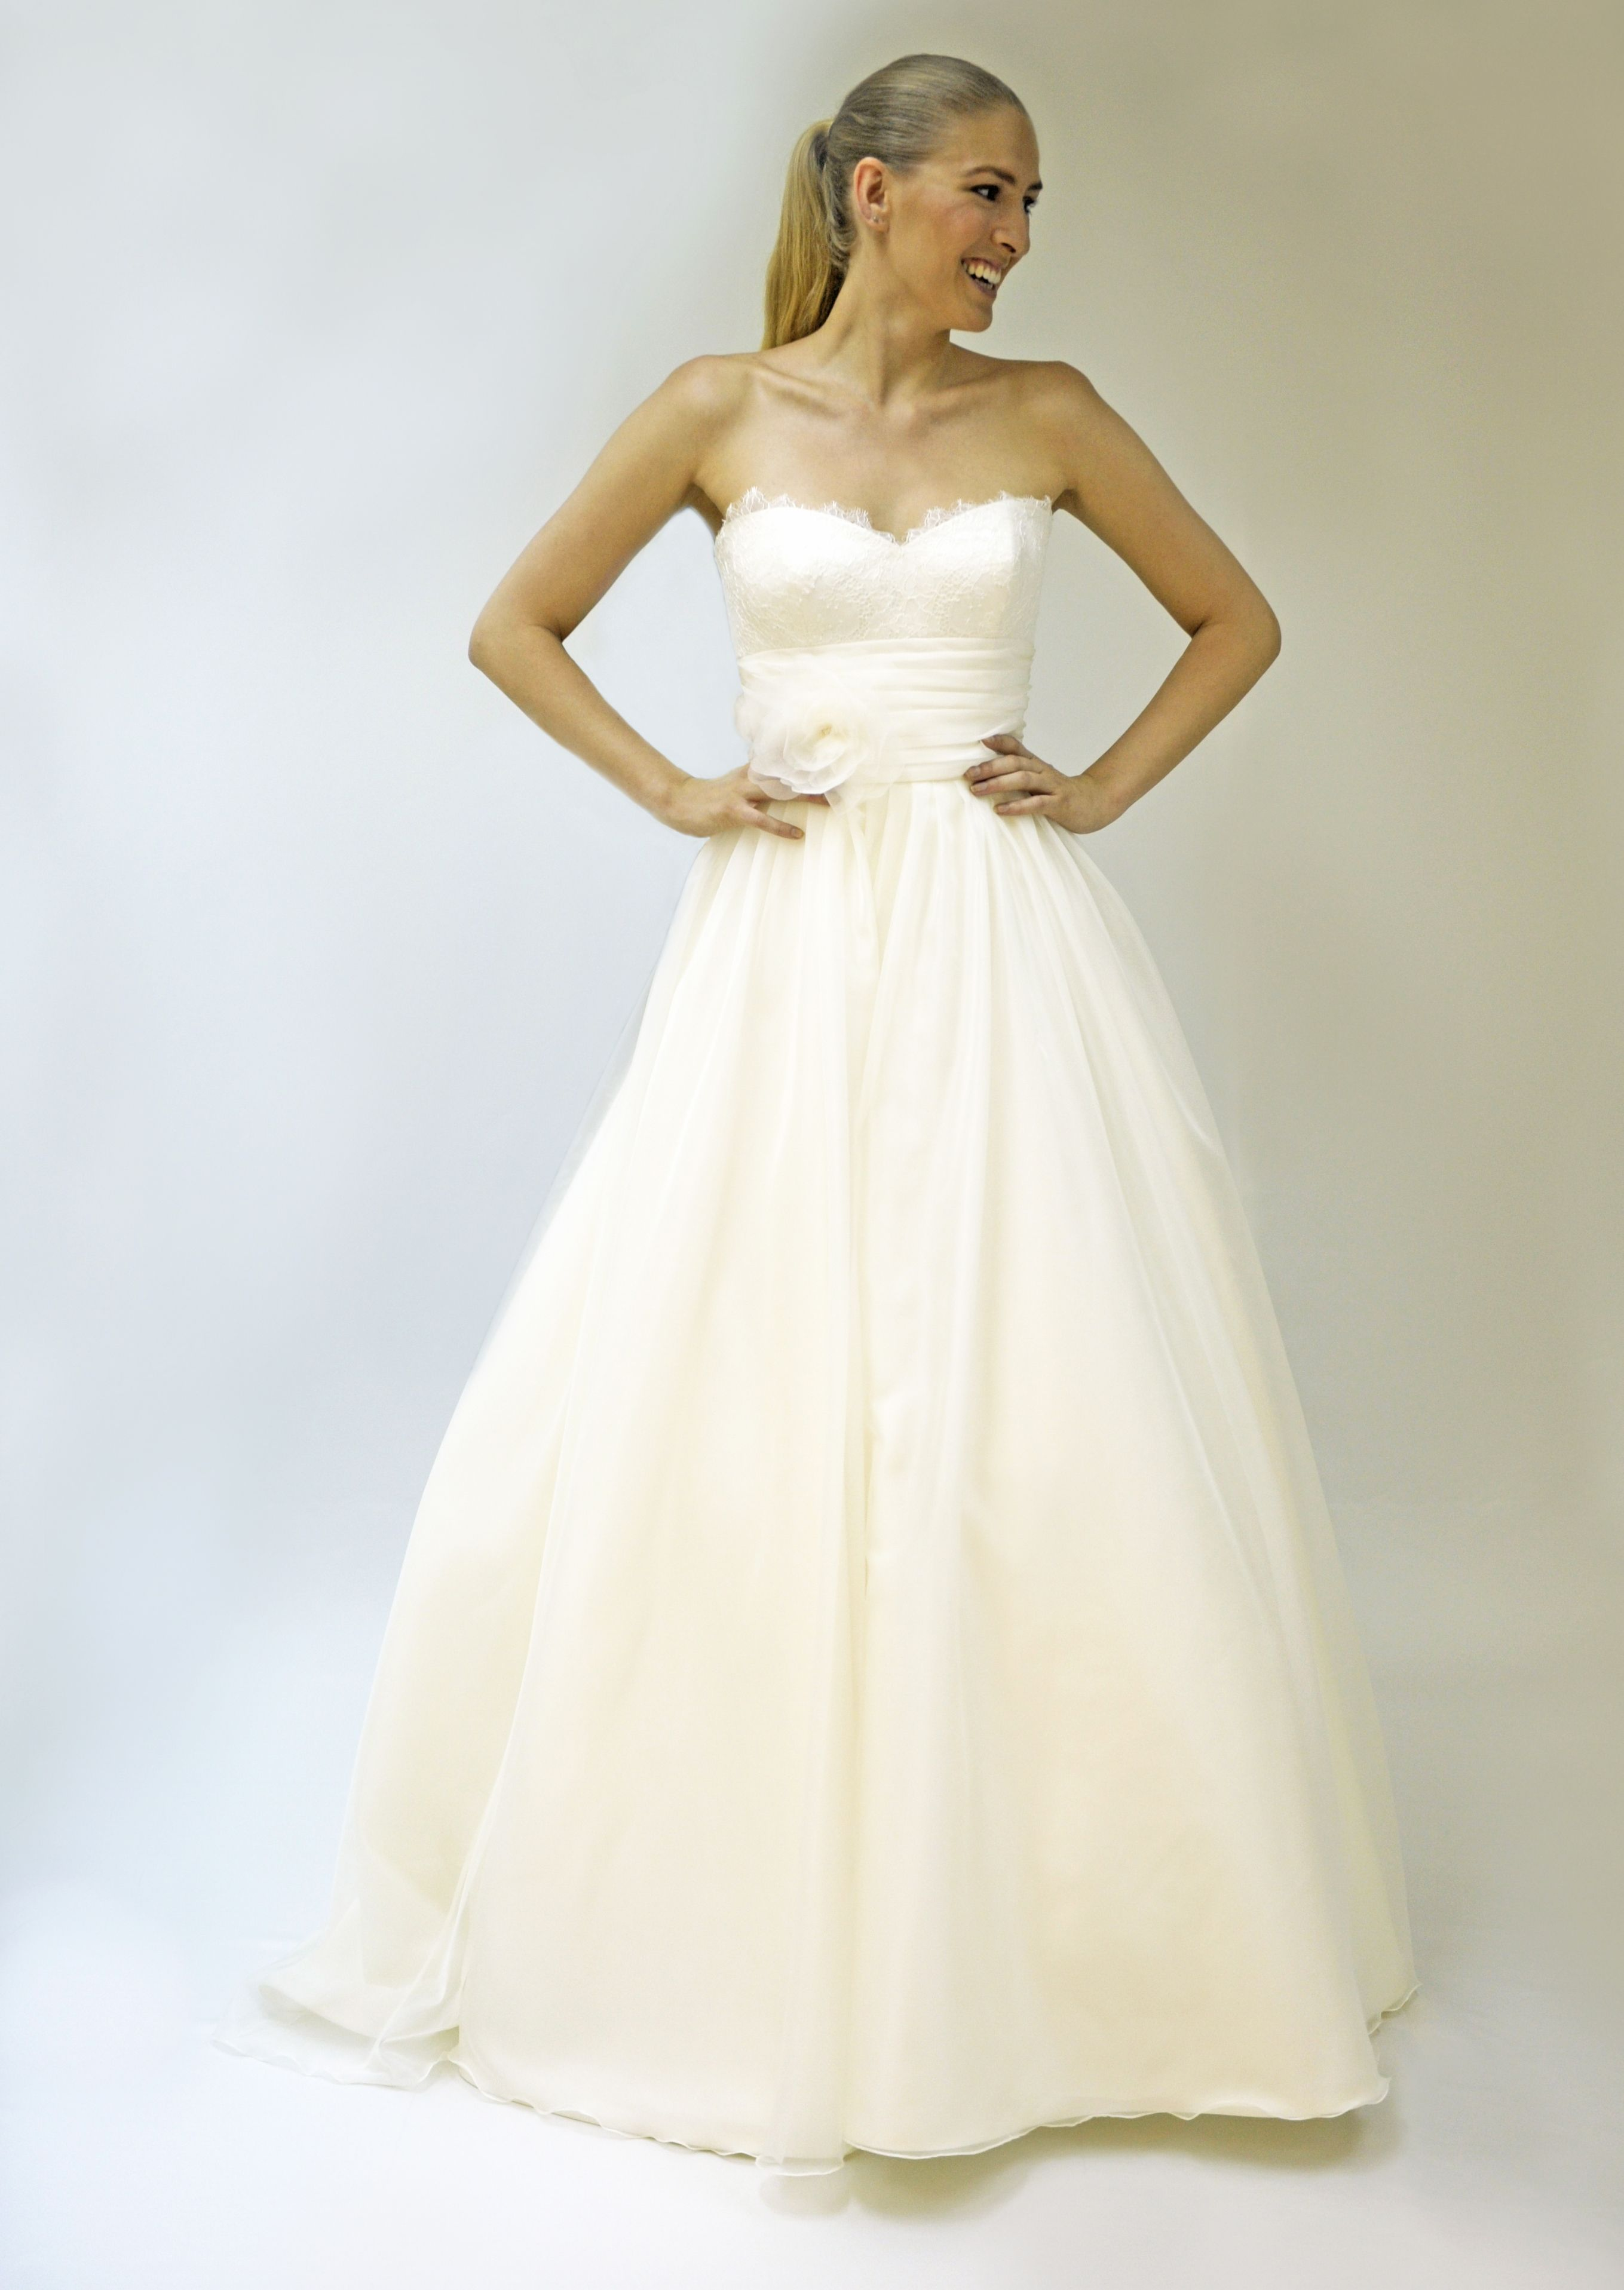 Ross wedding dress  Augusta Jones   Augusta Jones Creations  Pinterest  Augusta jones